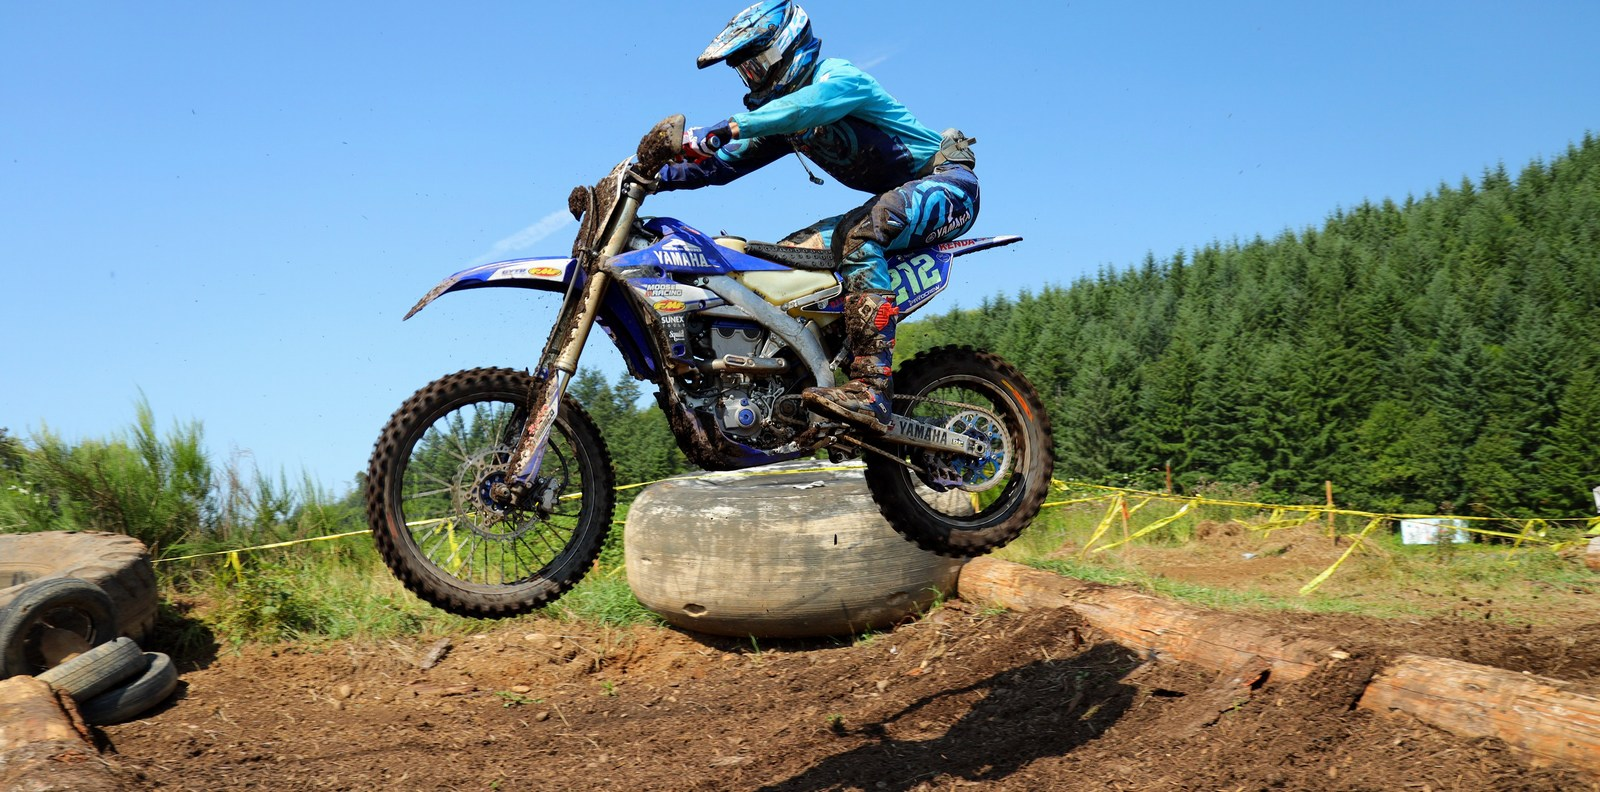 2019-08-ricky-russell-bike-worcs-racing